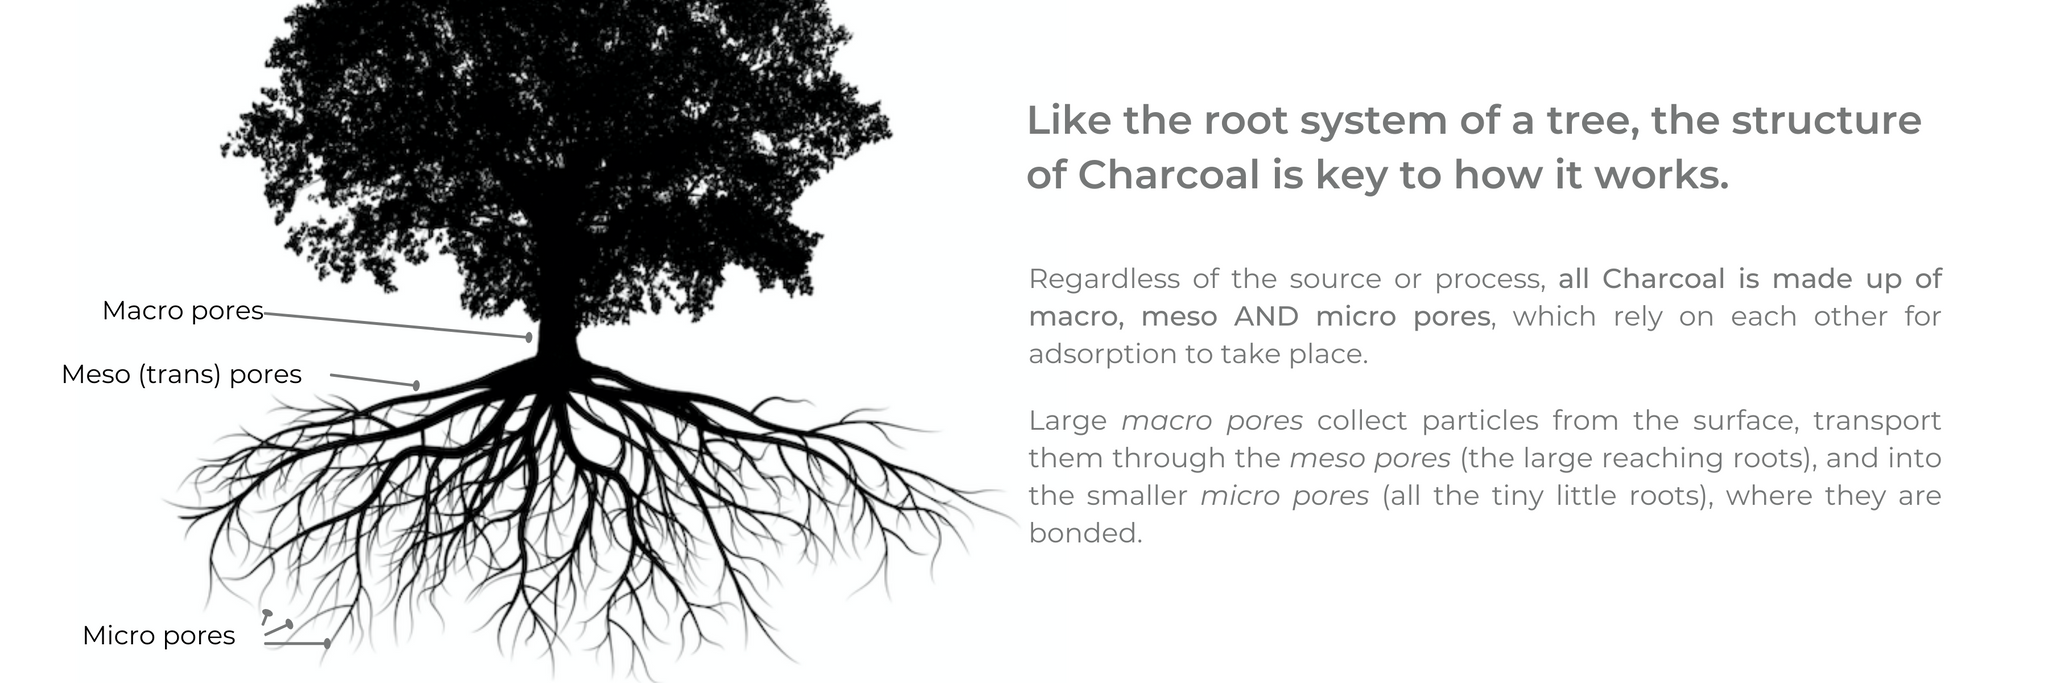 Illustration of a tree with a complex root system. Like the root system of a tree, the structure  of Charcoal is key to how it works. Regardless of the source or process, all Charcoal is made up of macro, meso AND micro pores, which rely on each other for adsorption to take place. Large macro pores collect particles from the surface, transport them through the meso pores (the large reaching roots), and into the smaller micro pores (all the tiny little roots), where they are bonded.